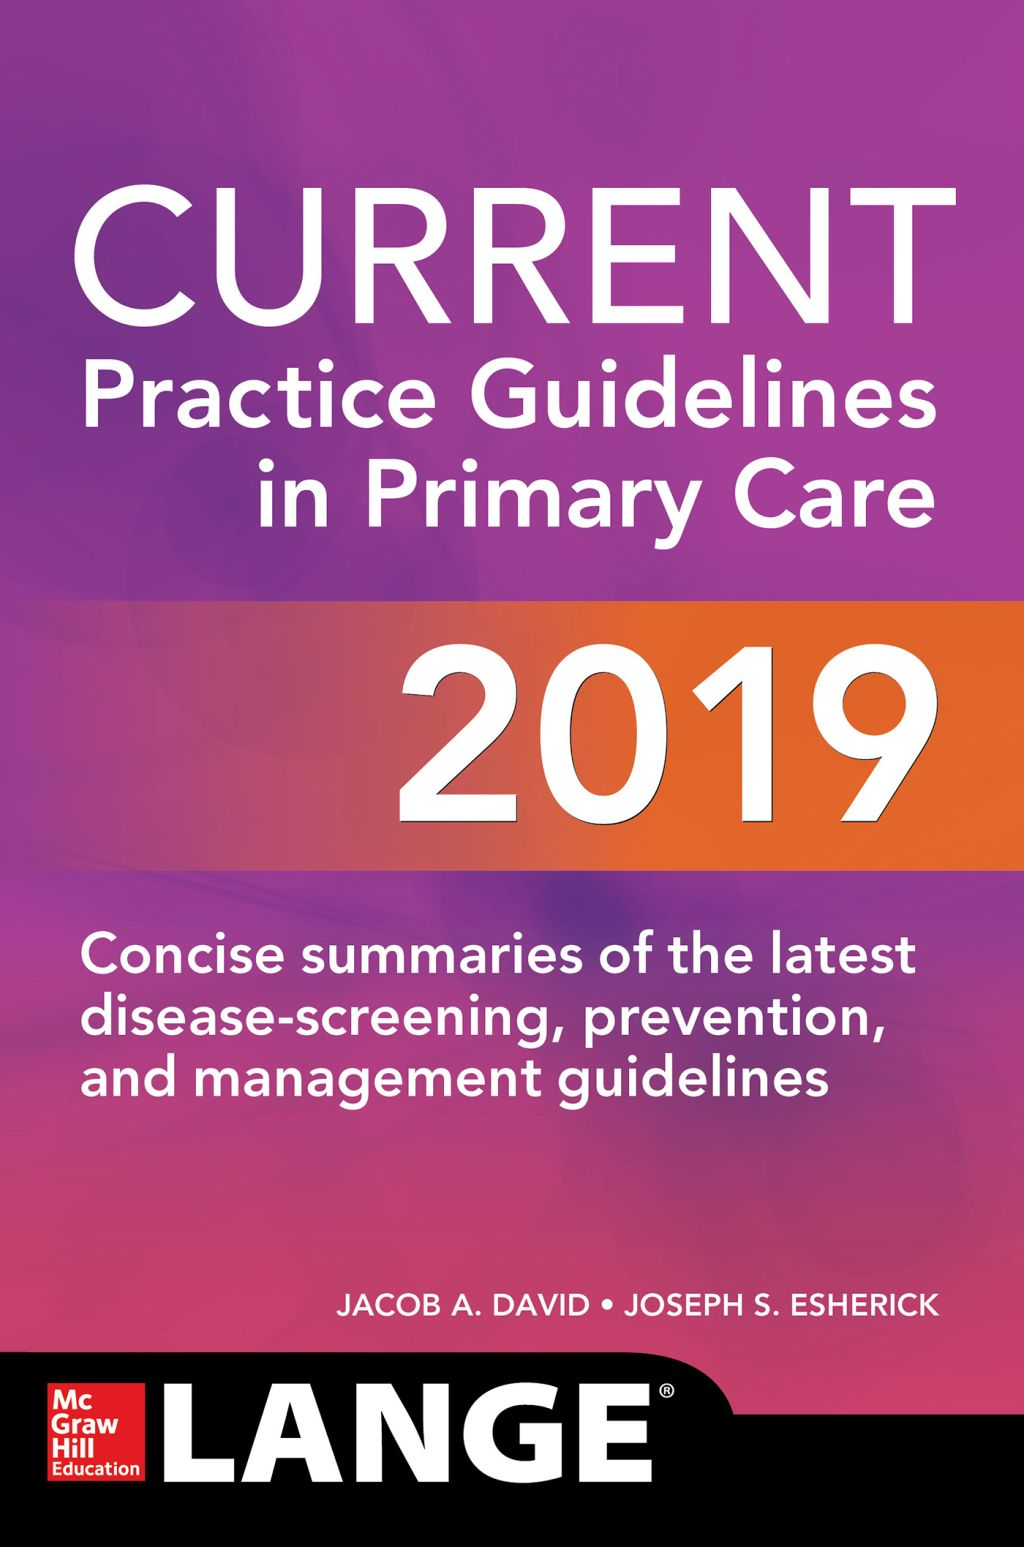 CURRENT Practice Guidelines in Primary Care 2019 (eBook